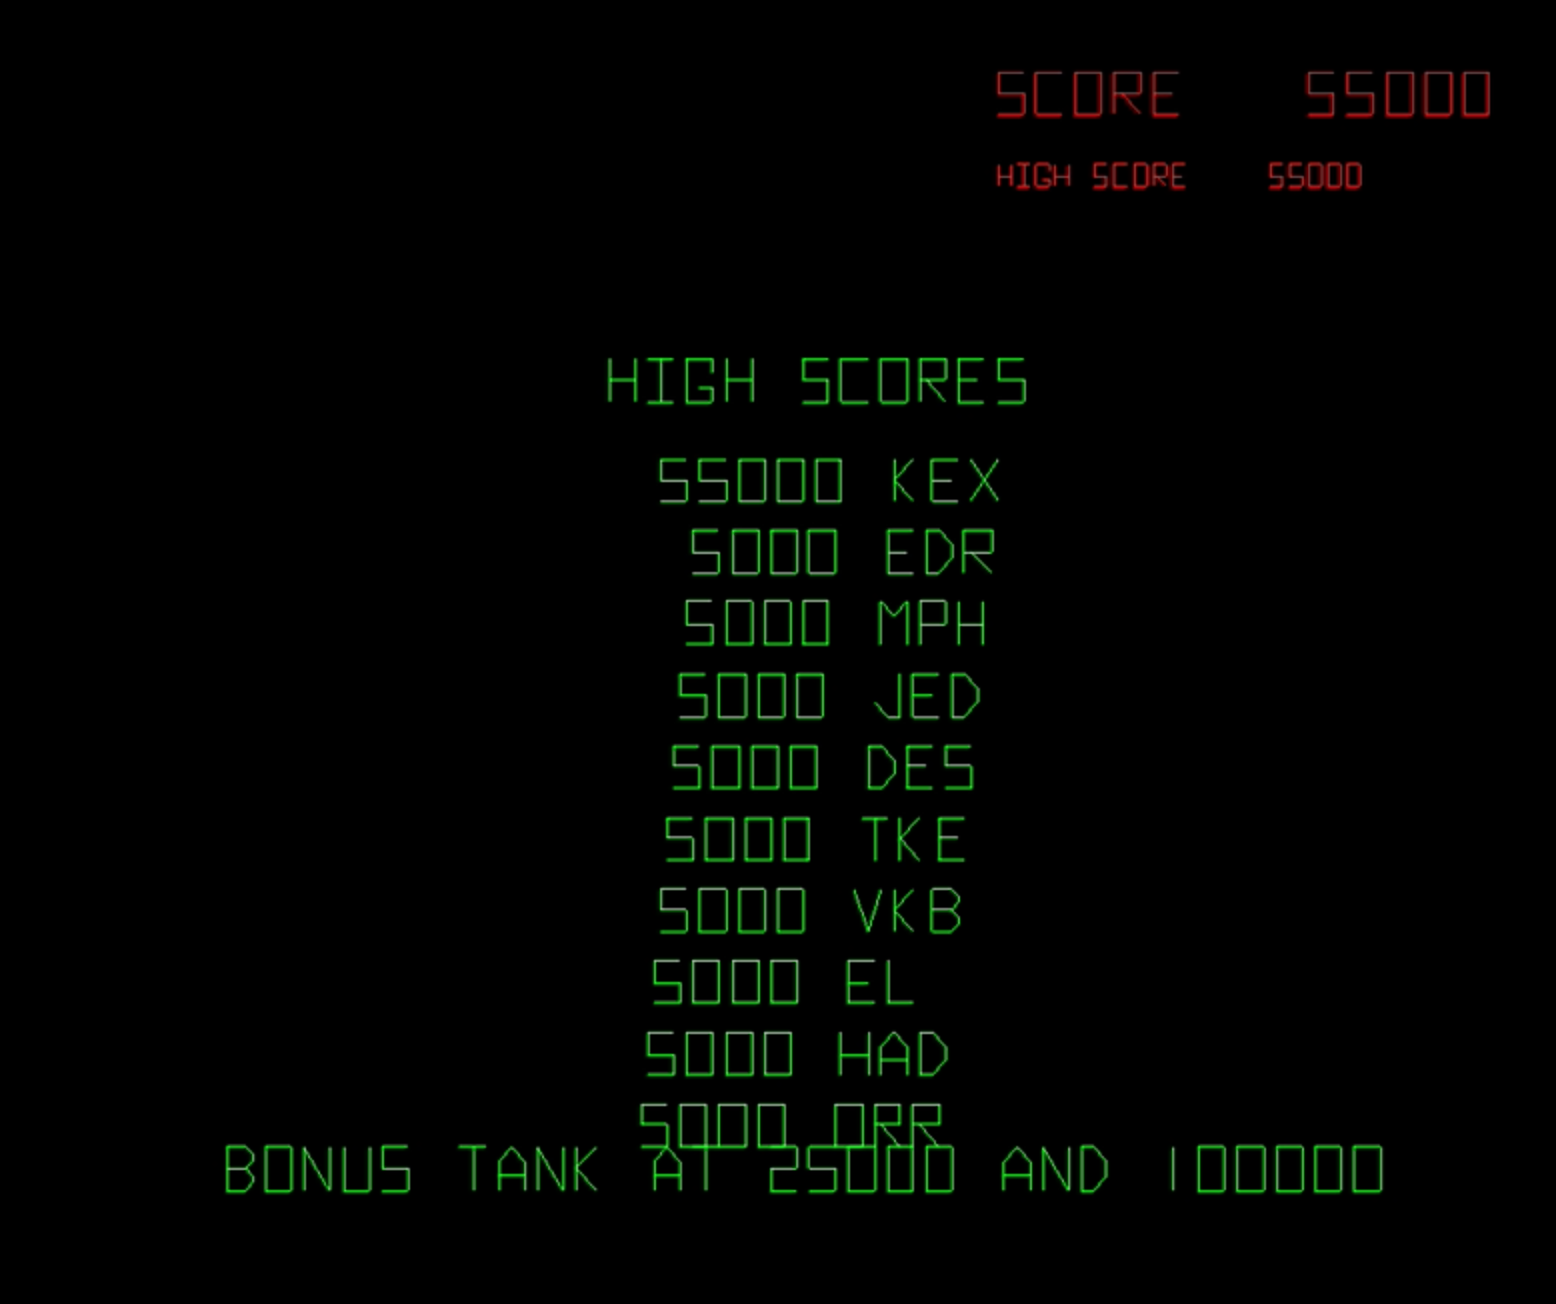 Battlezone 55,000 points